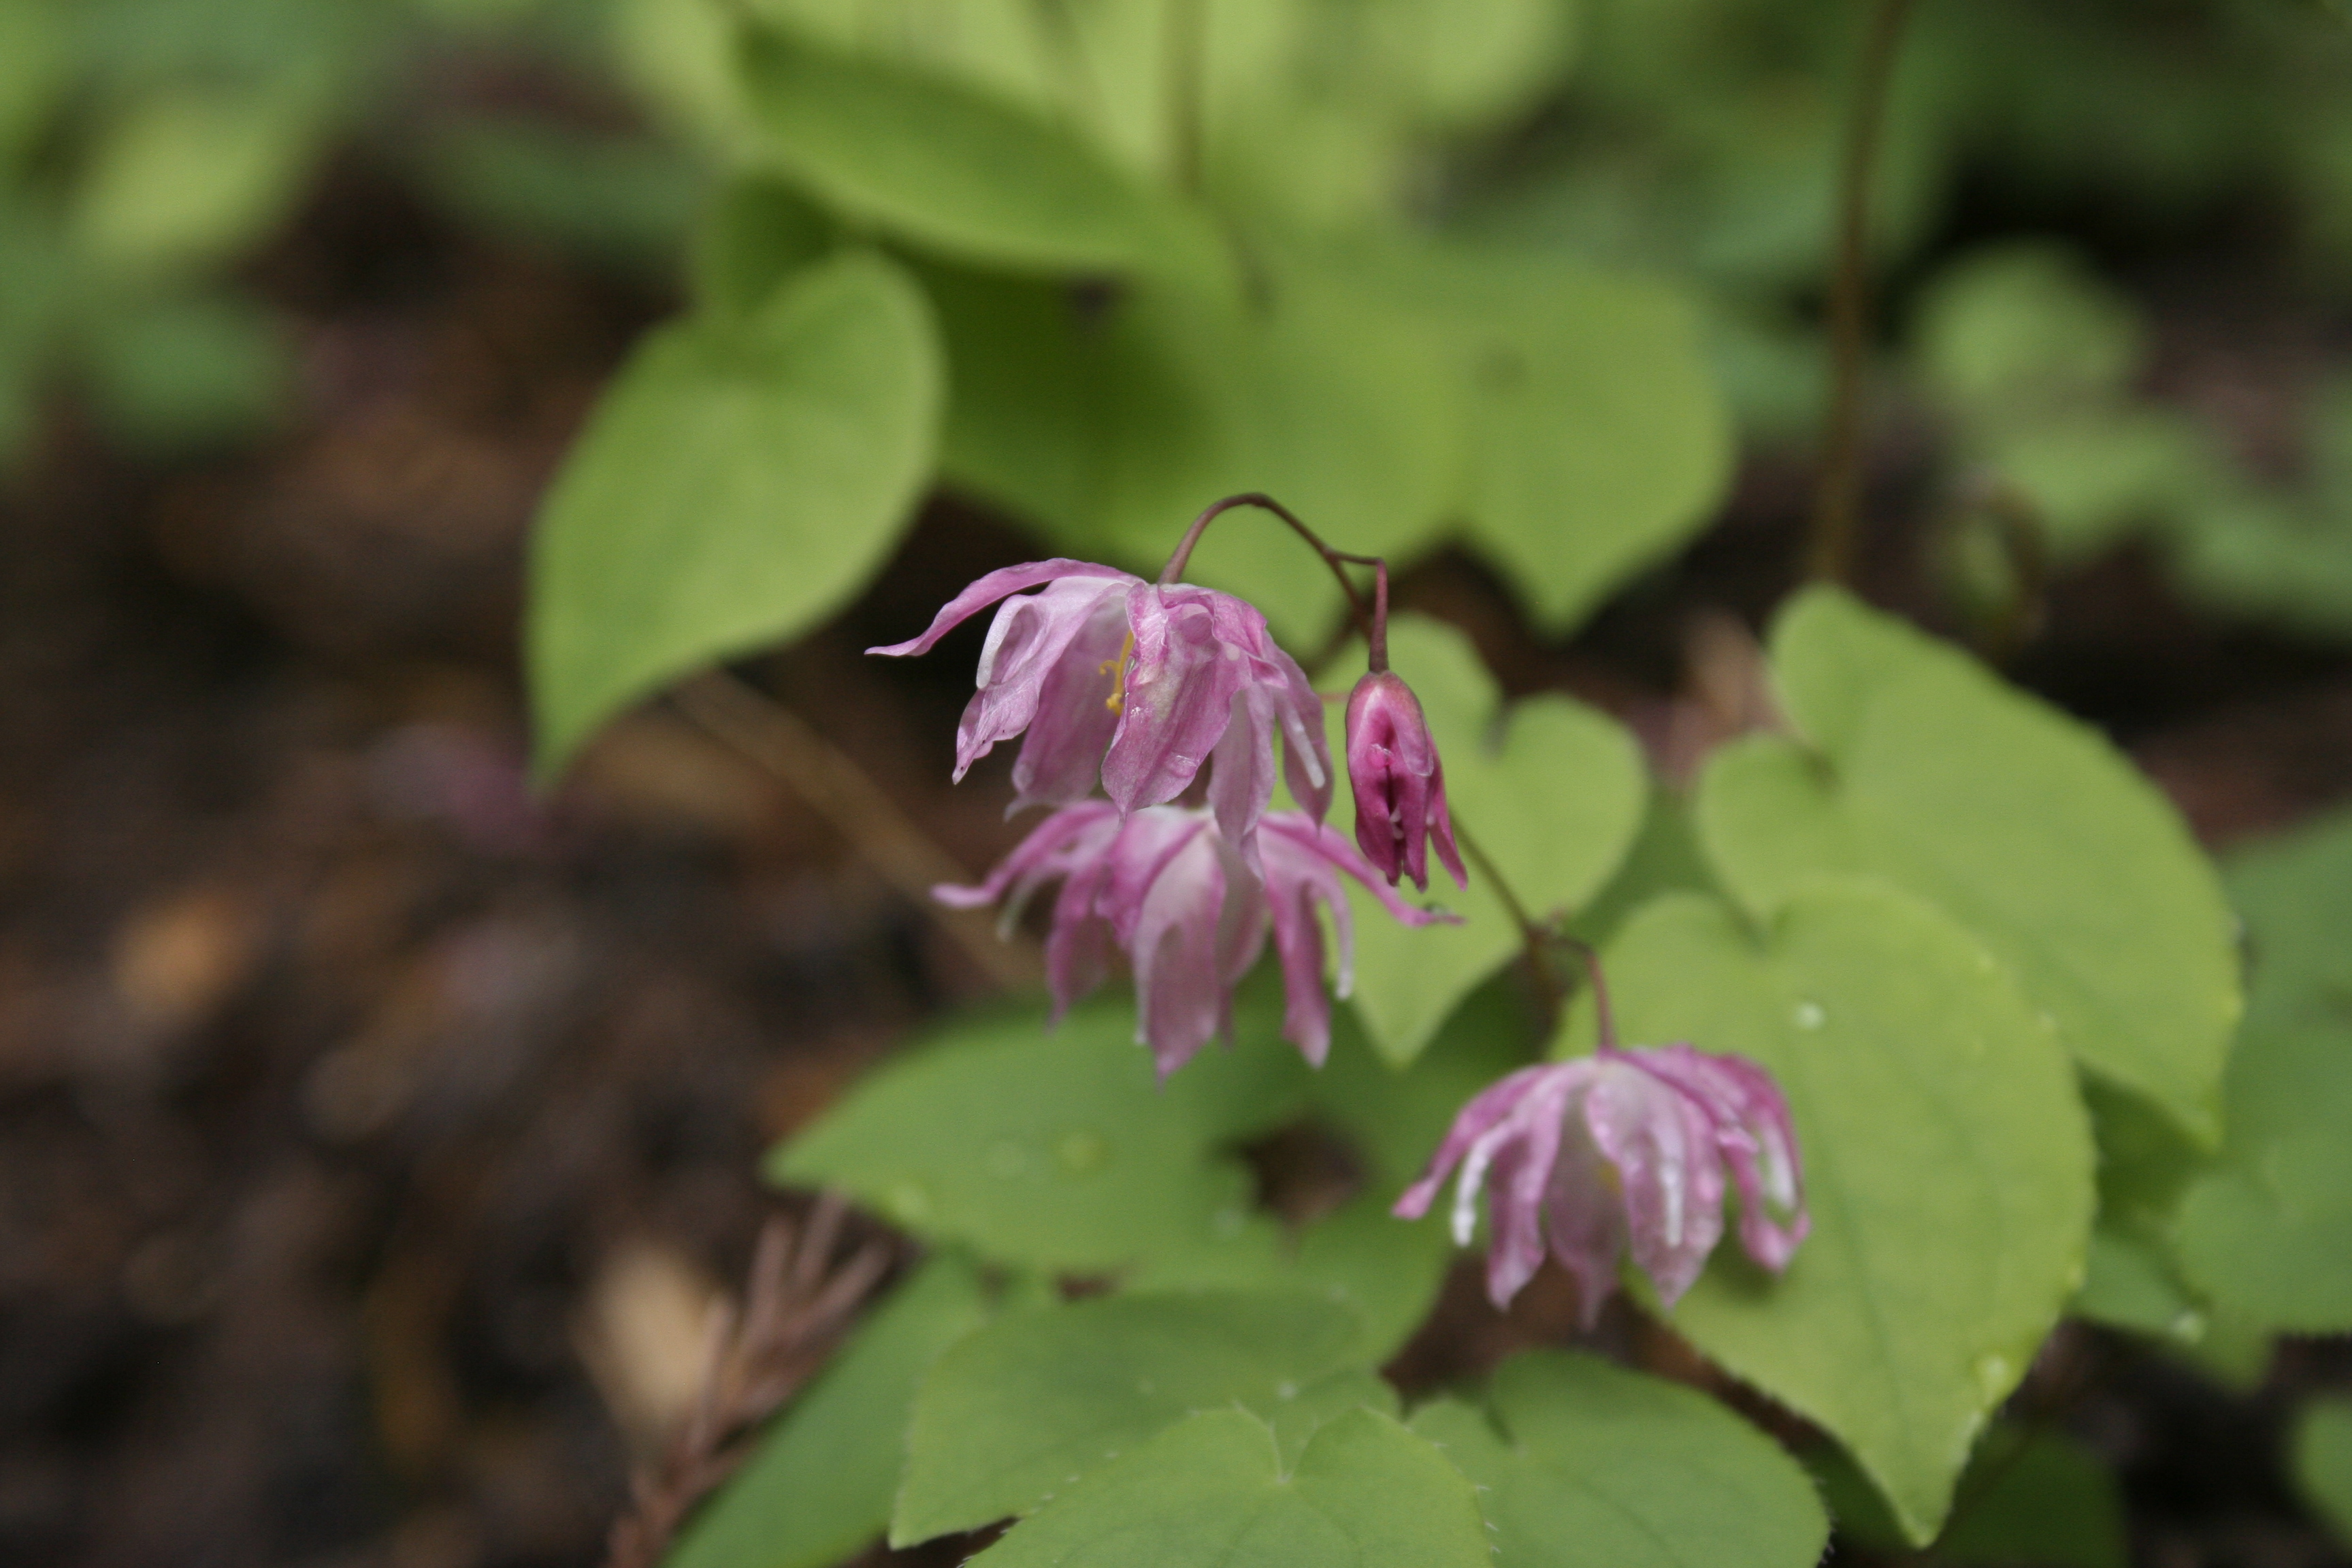 Epimedium x youngianum 'Beni-kujaku' @ Japan (T. Izumi) - name means Red Peacock'; deciduous